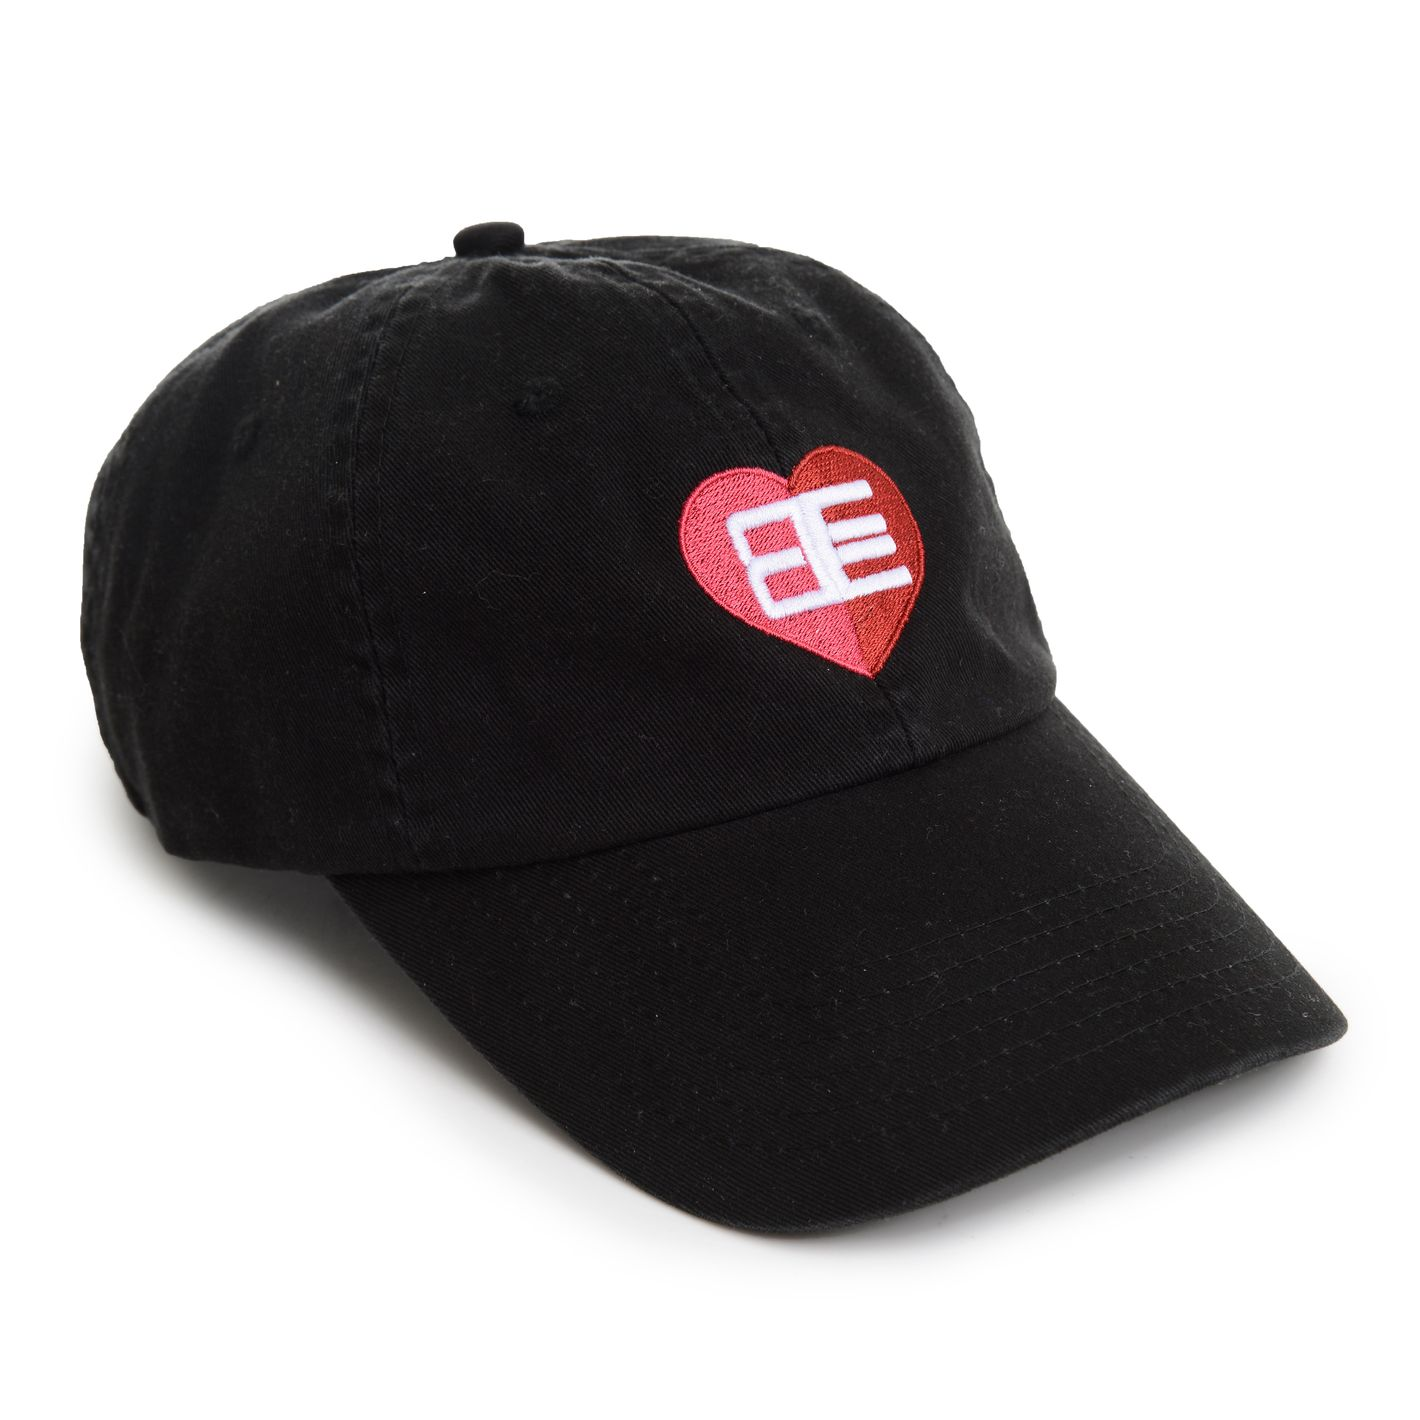 Baja East BE Mine Cap